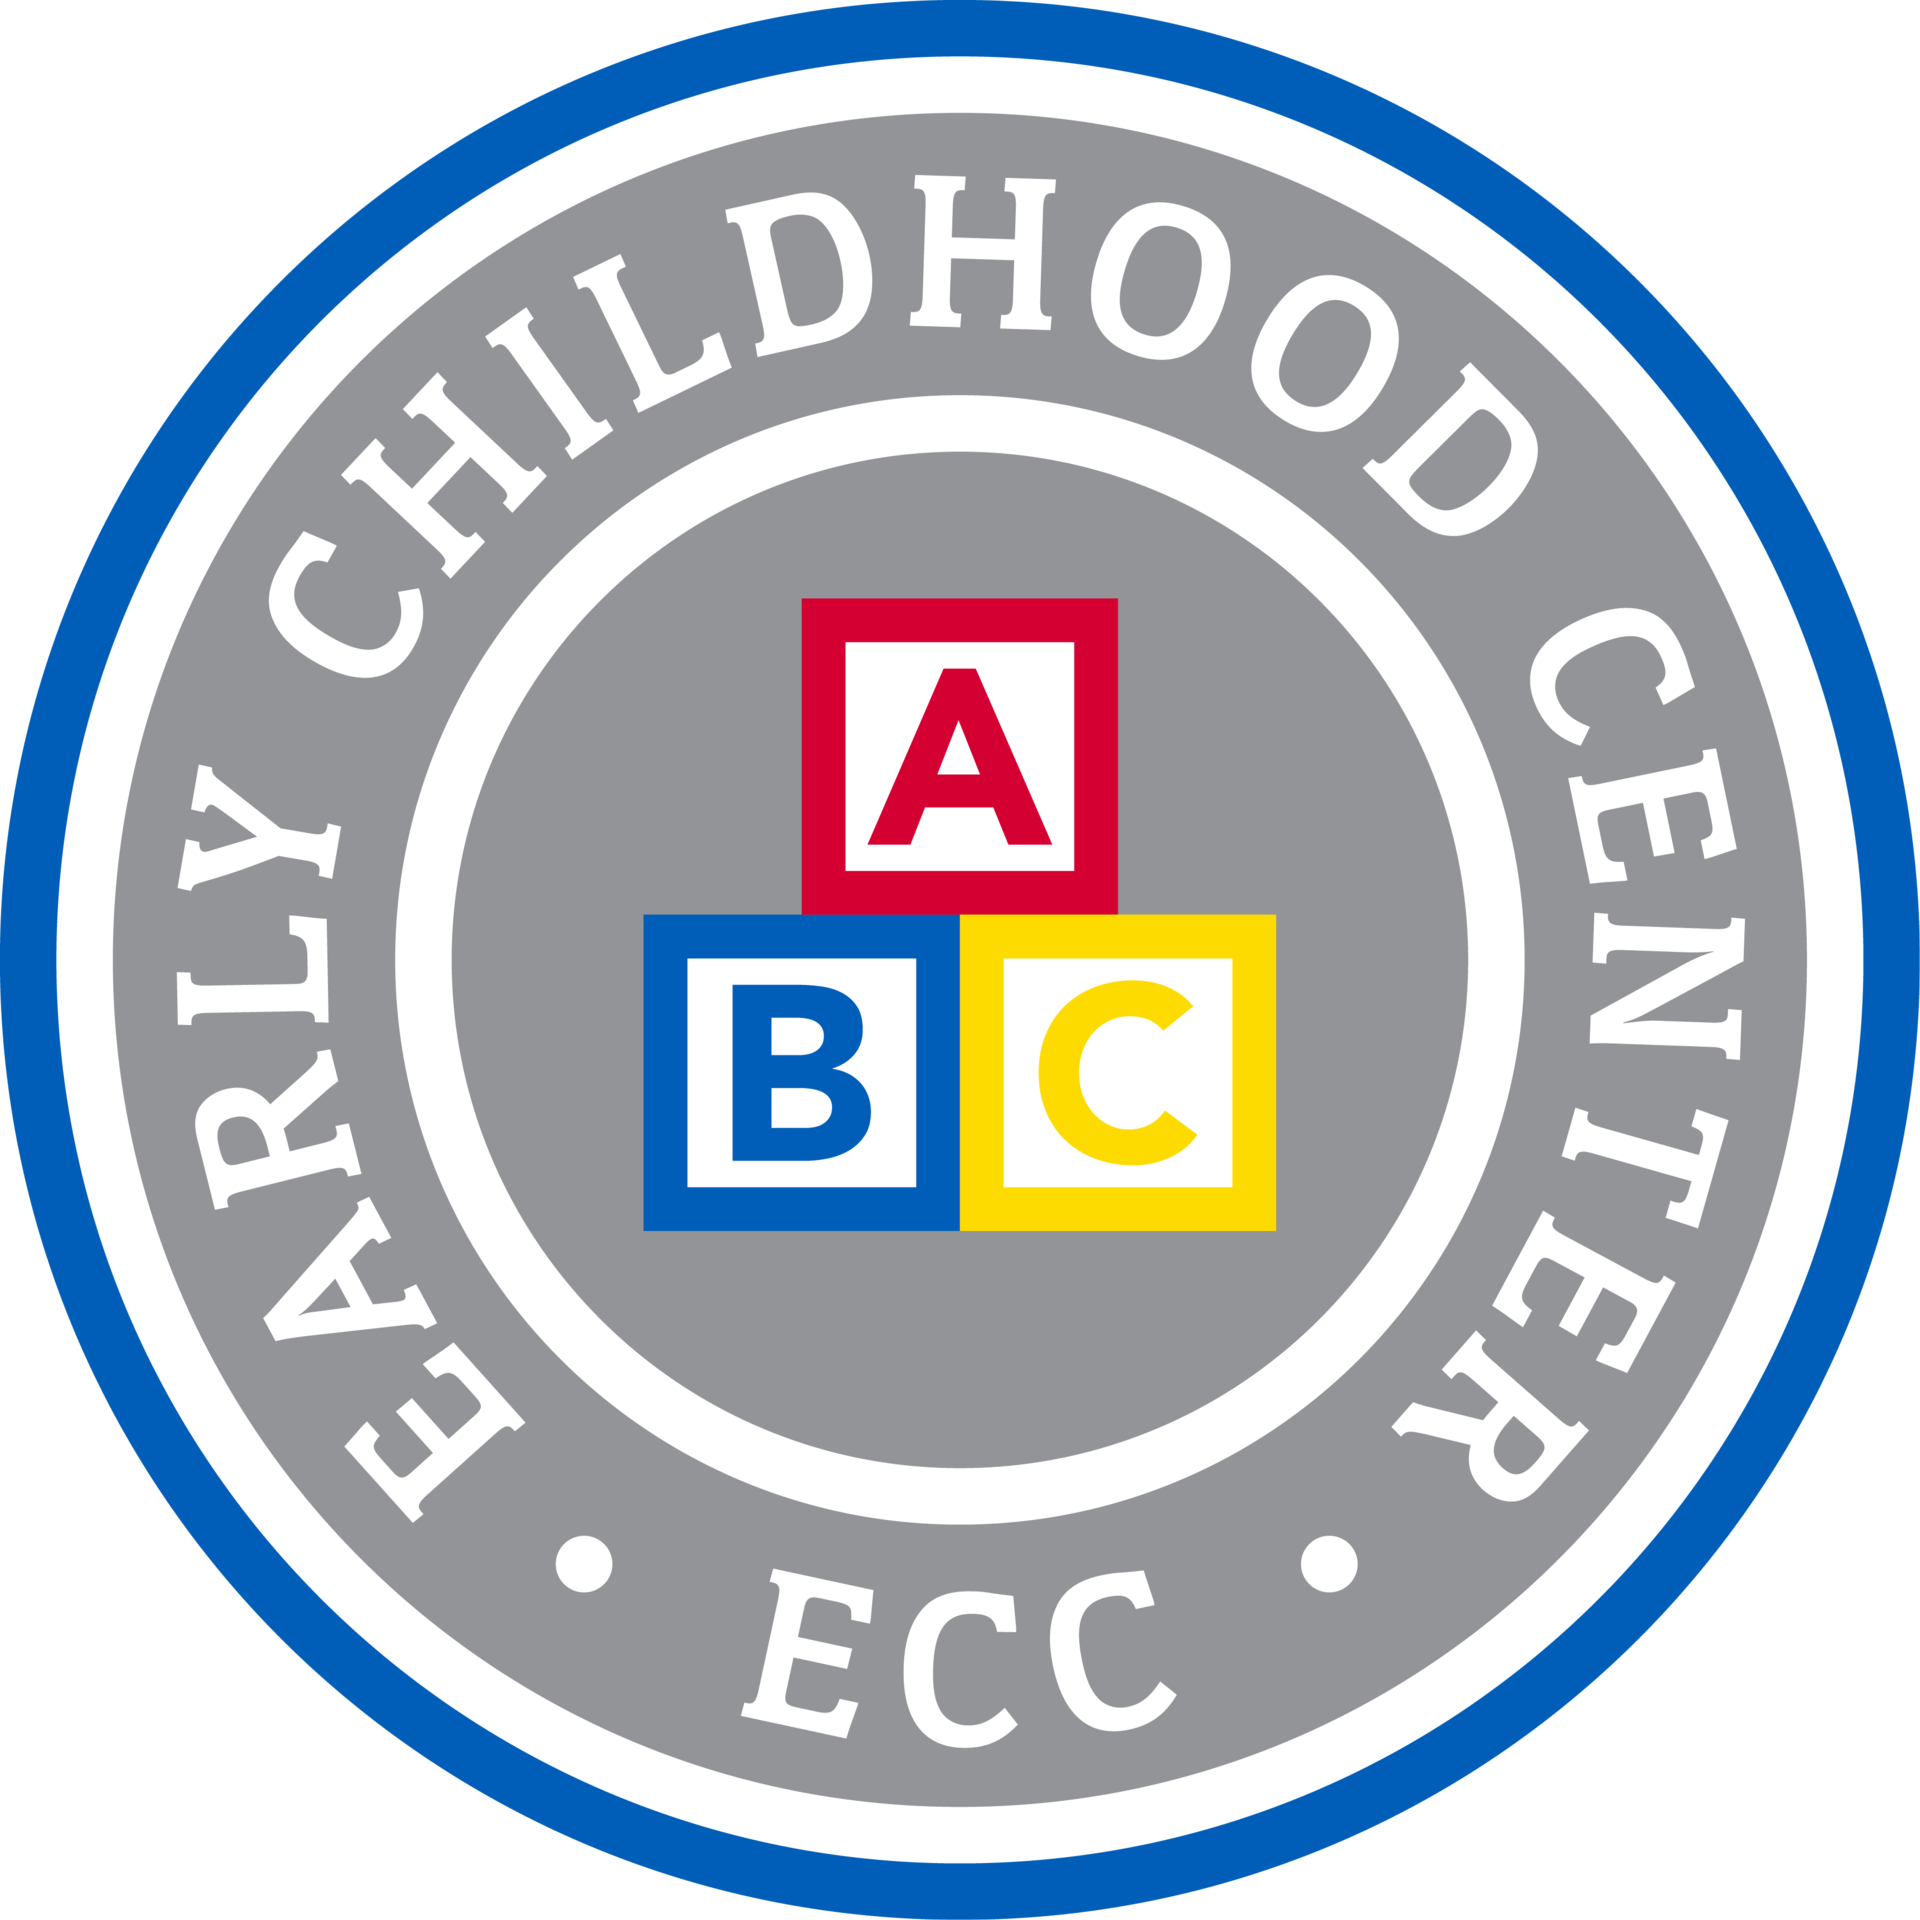 Early Chldhood Center seal